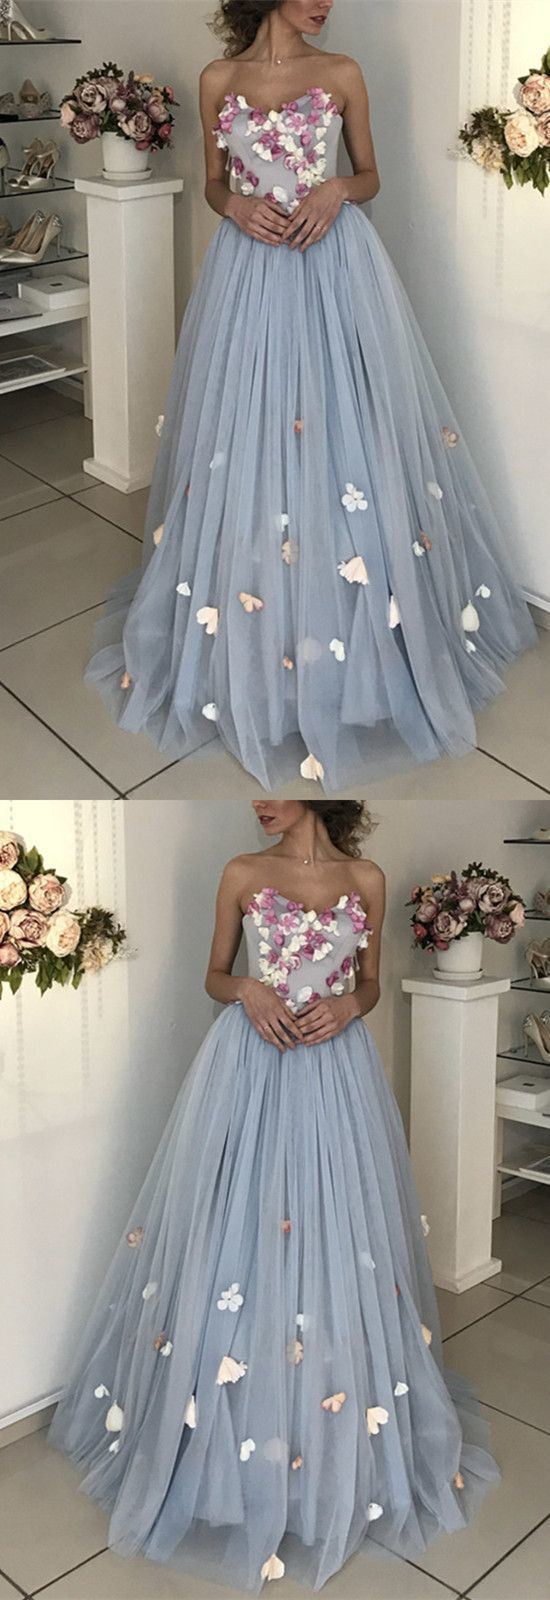 A-line Floral Flowers Sweetheart Tulle Floor Length Wedding Dress Prom Dresses